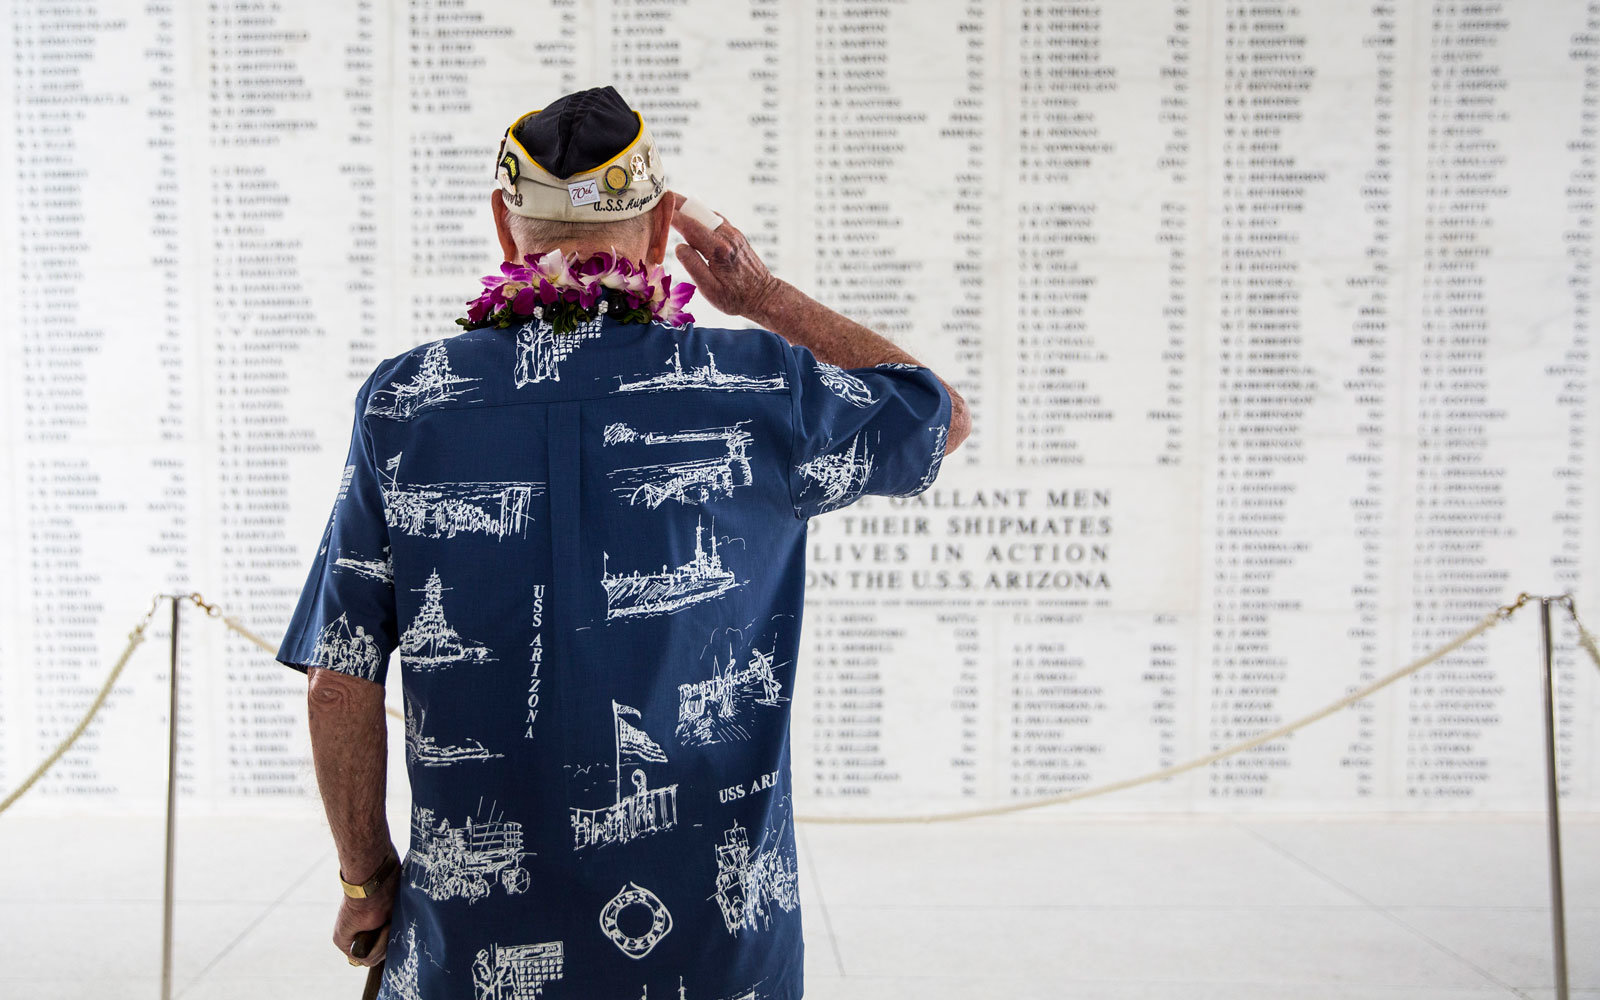 Pearl Harbor veteran